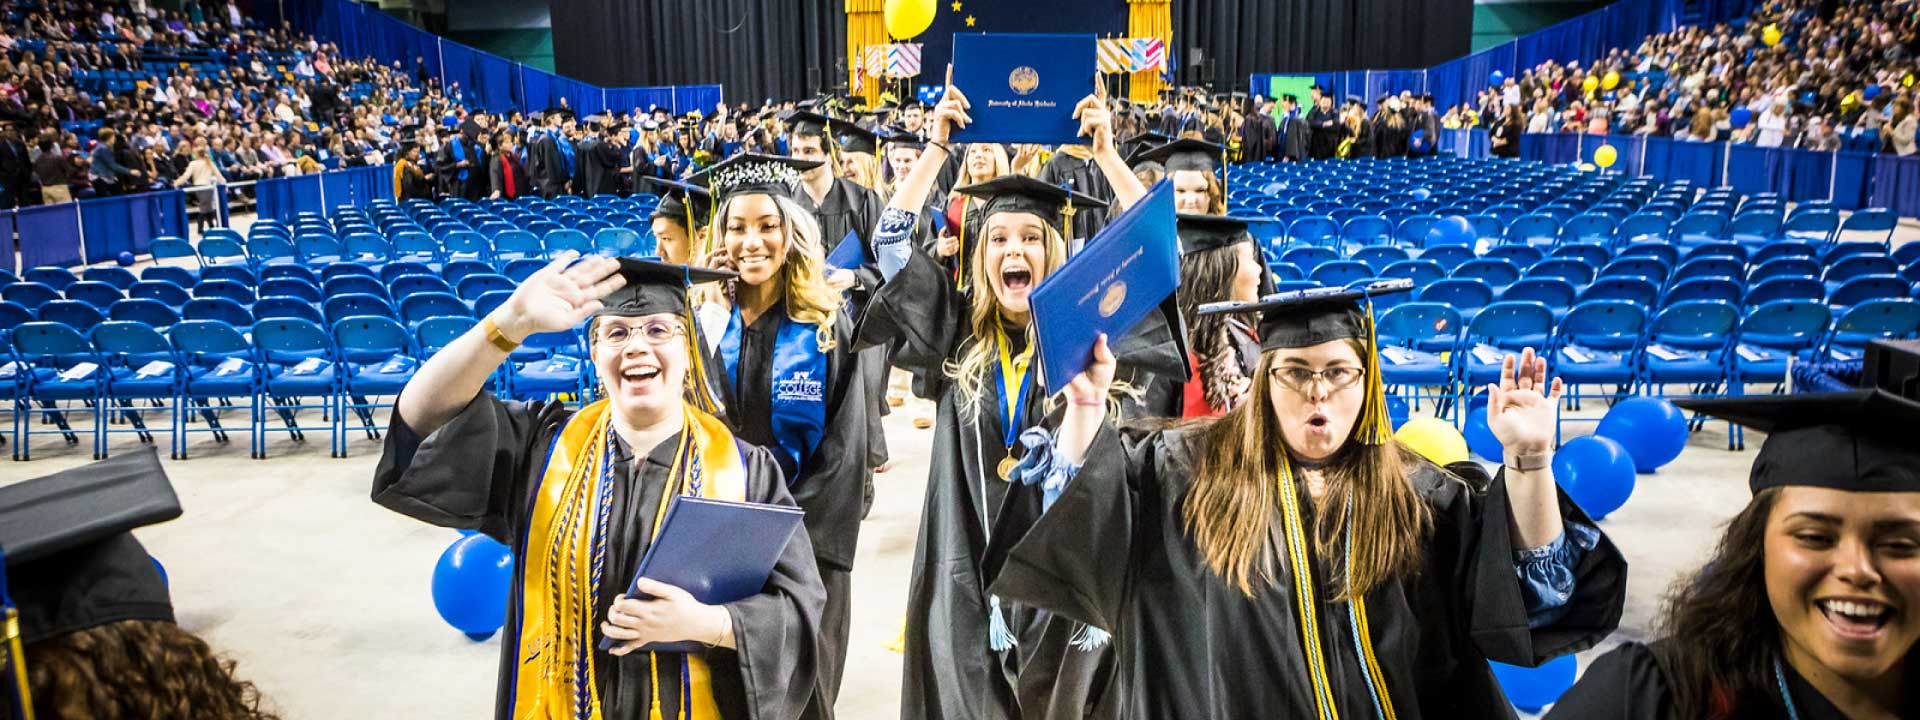 Celebrating students proceed out of the Carlson Center after the 2018 commencement ceremony